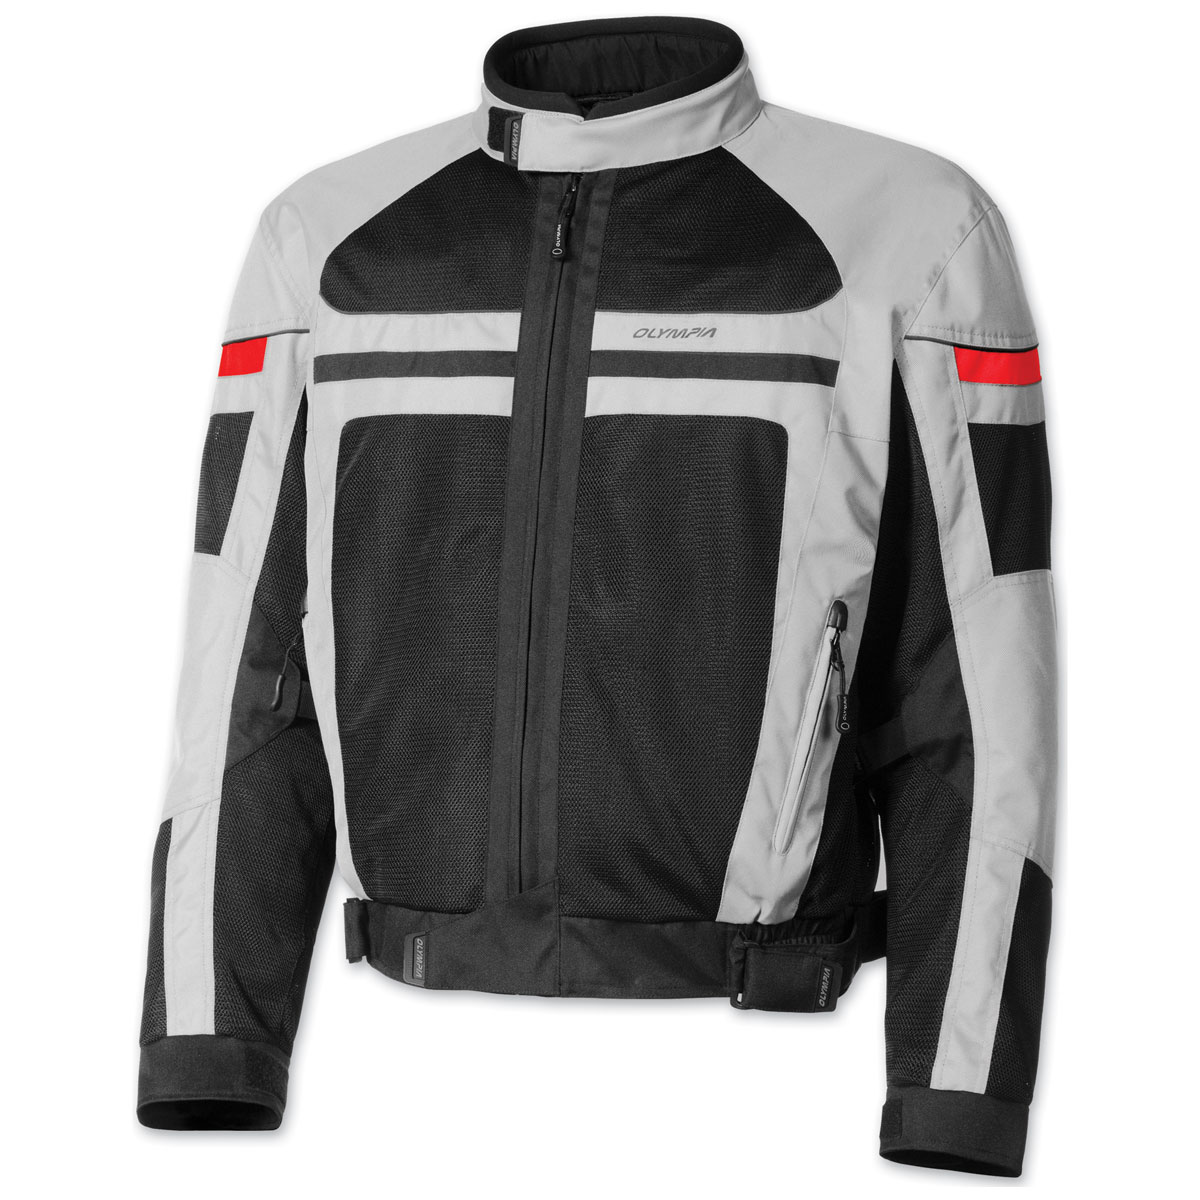 Olympia Moto Sports Men's Newport Silver Jacket